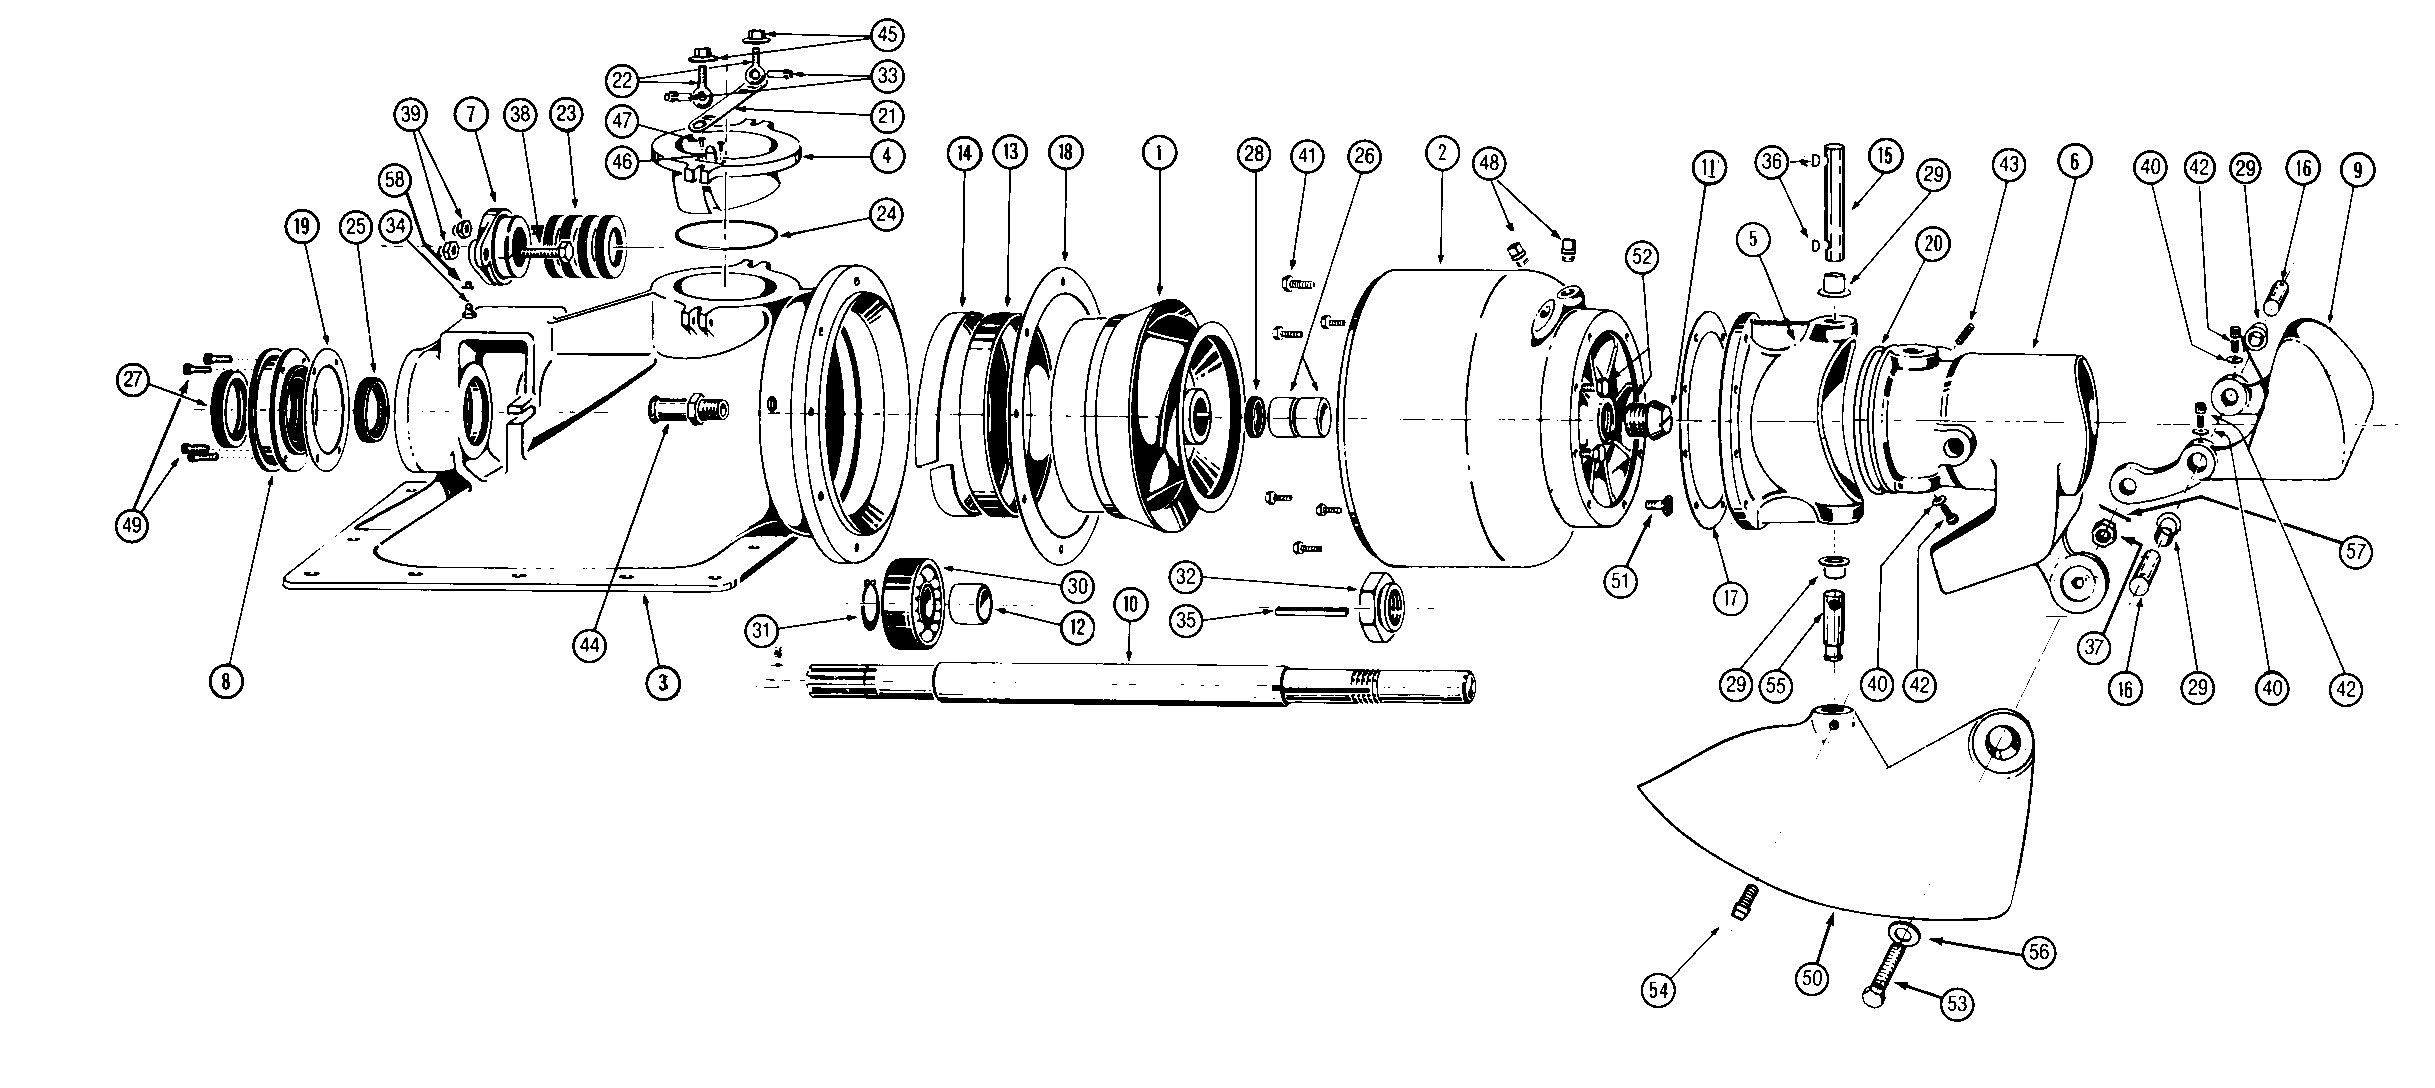 Hardin Marine Jet Boat Wiring Diagram Boston Whaler 454 Model 12jg Parts On Mercruiser Fuel Gauge